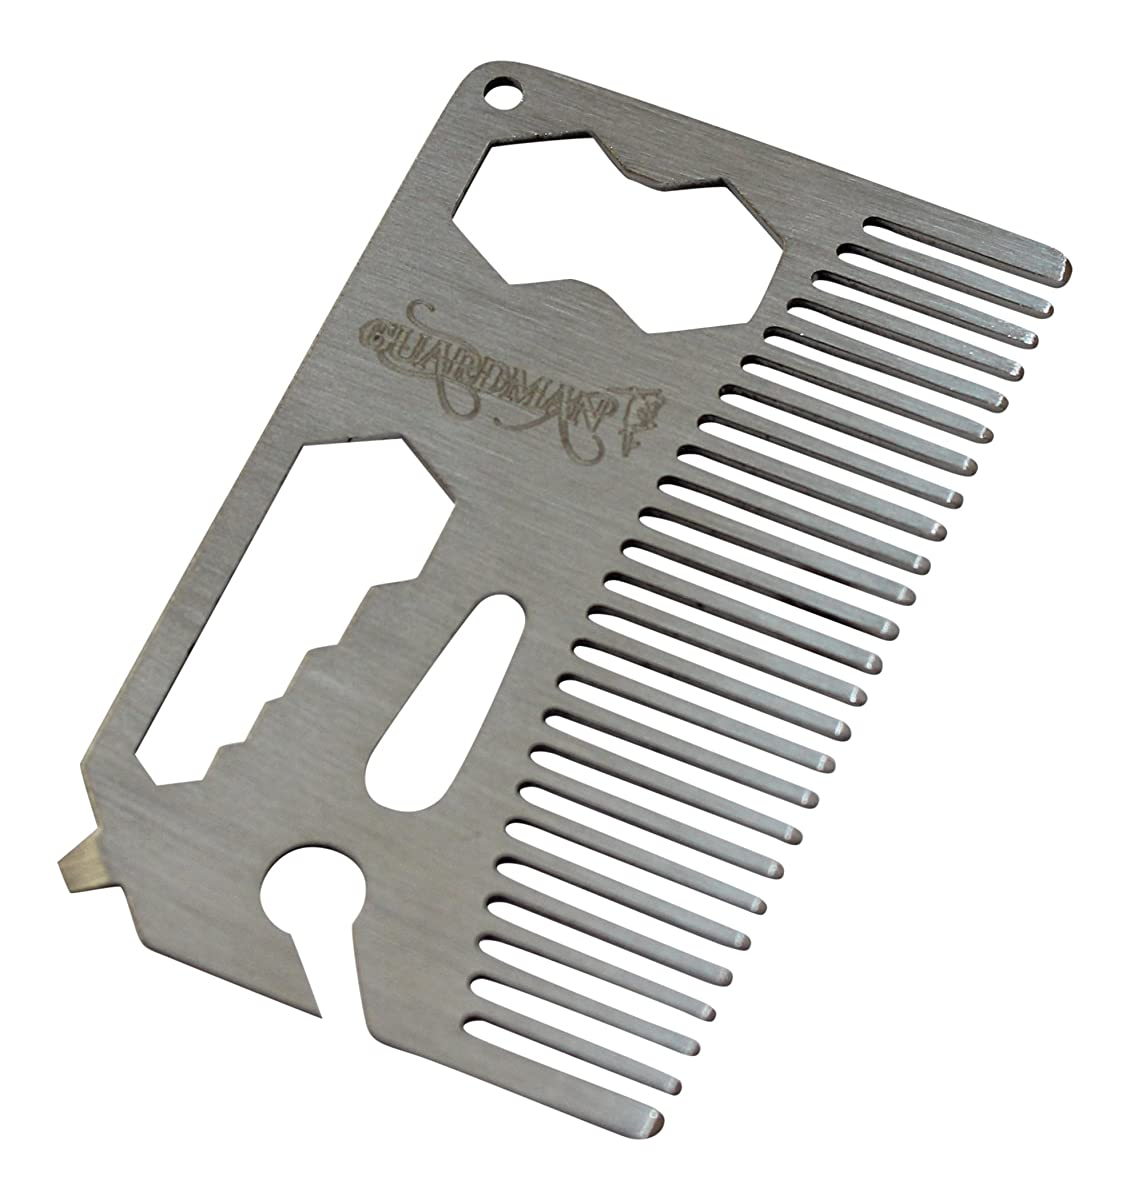 Guardman Stainless Steel Multitool With Beer Bottle Opener & Hair Comb or Beard Comb - Gifts for Dad